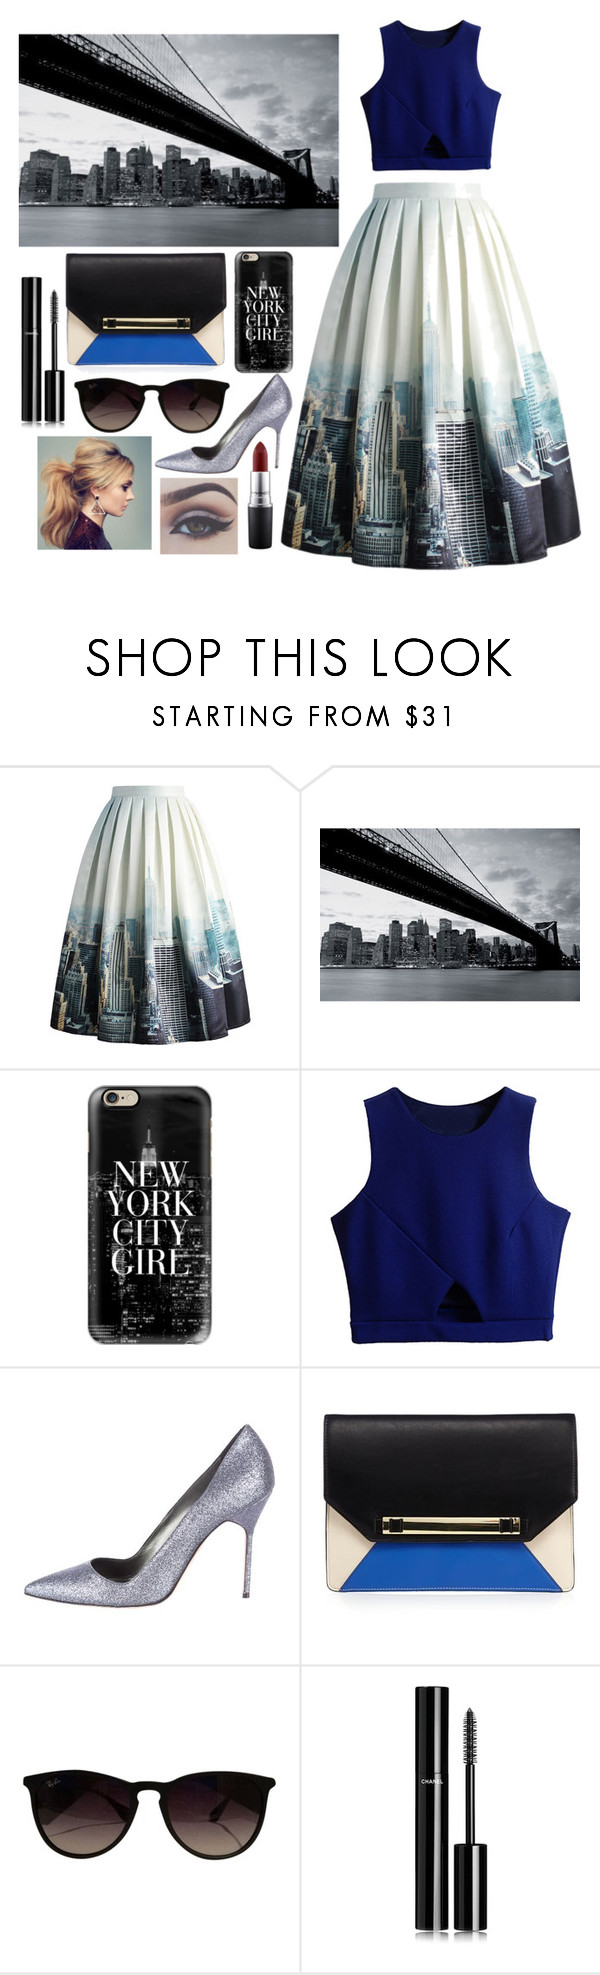 """""""new york girl"""" by panda071 ❤ liked on Polyvore featuring Chicwish, 1Wall, Casetify, Manolo Blahnik, Ray-Ban, Chanel and MAC Cosmetics"""